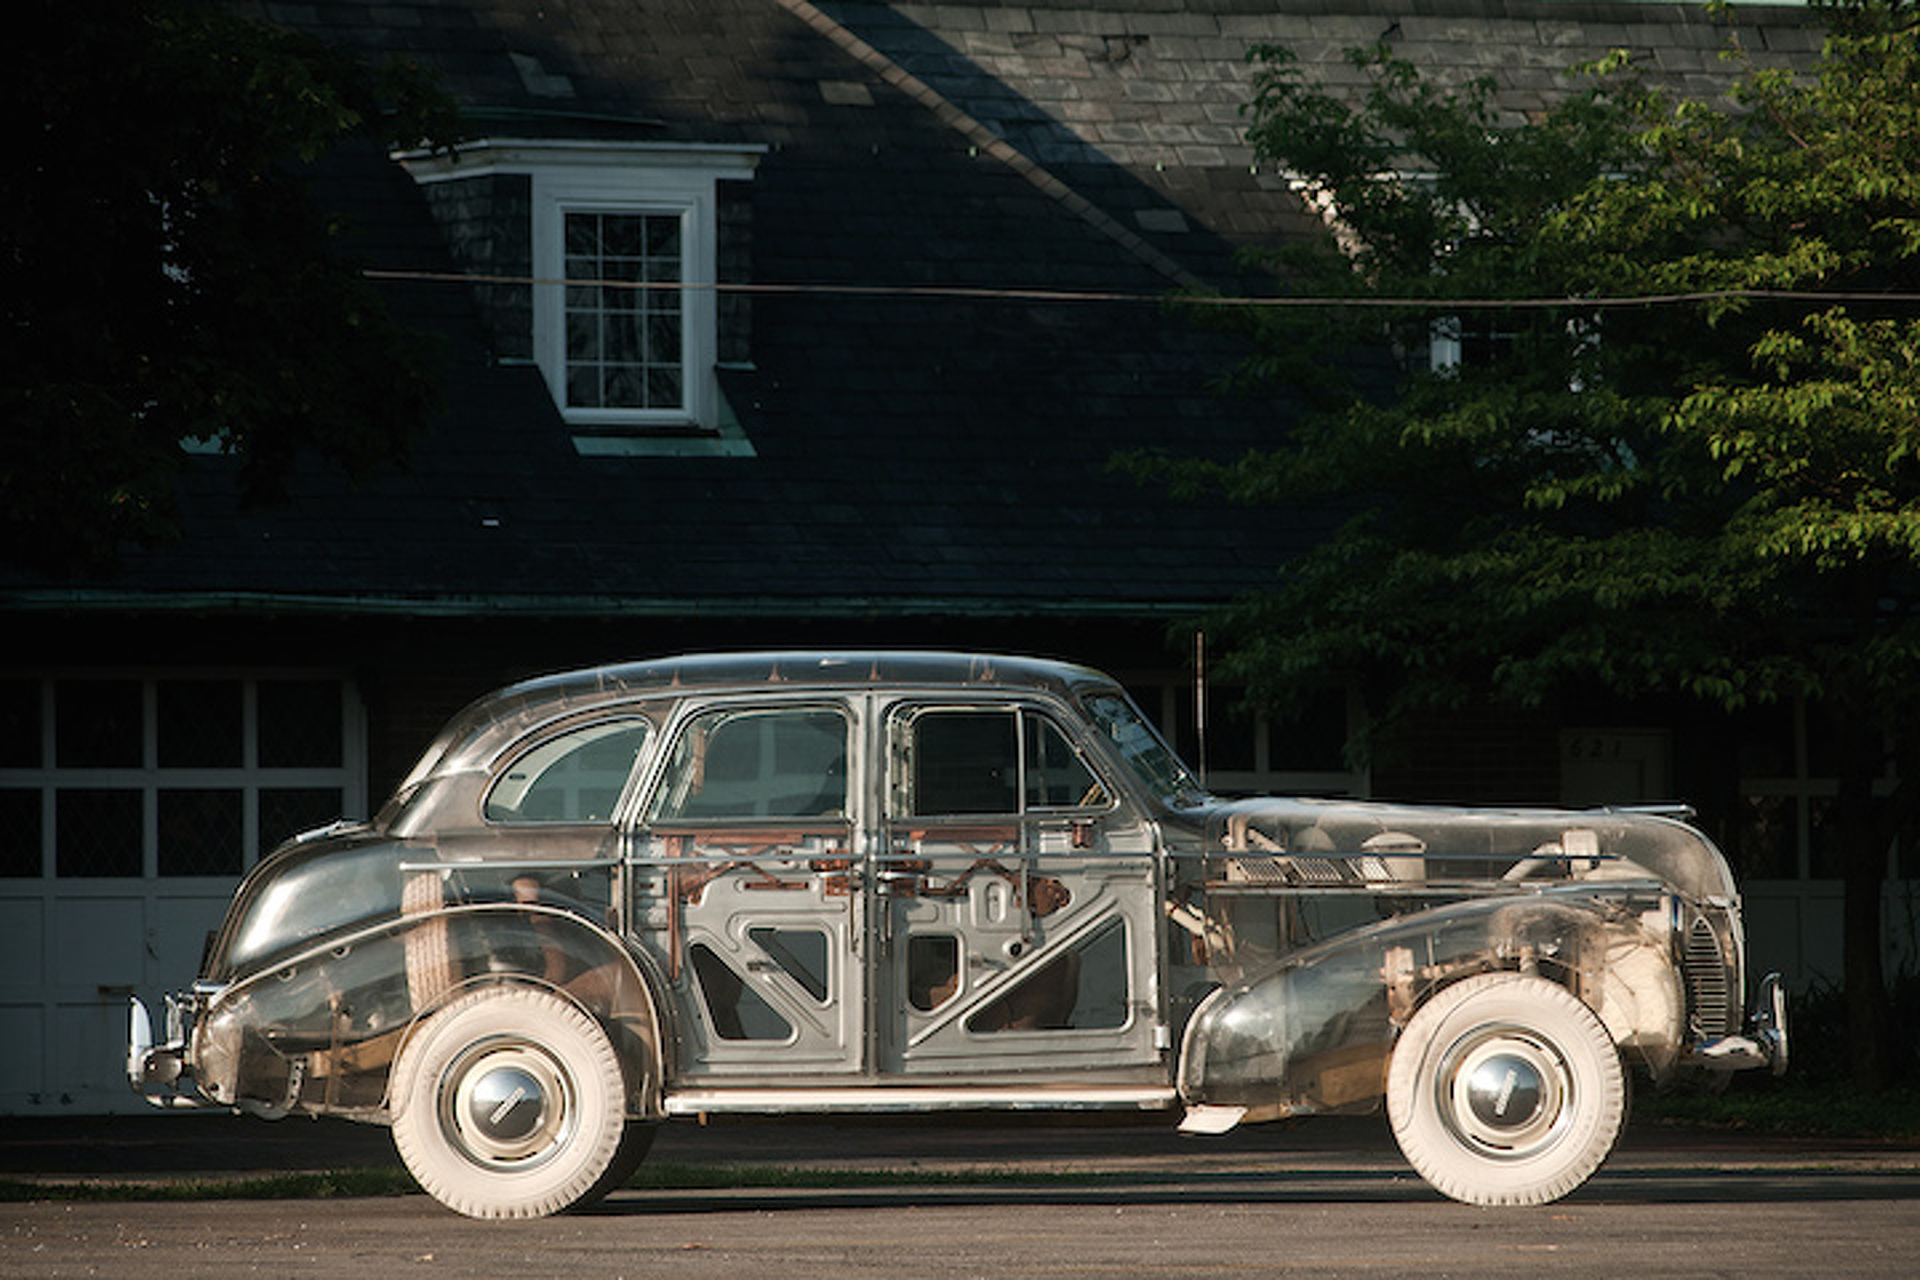 The Ghost in the Machine: The 1939 Plexiglass Pontiac